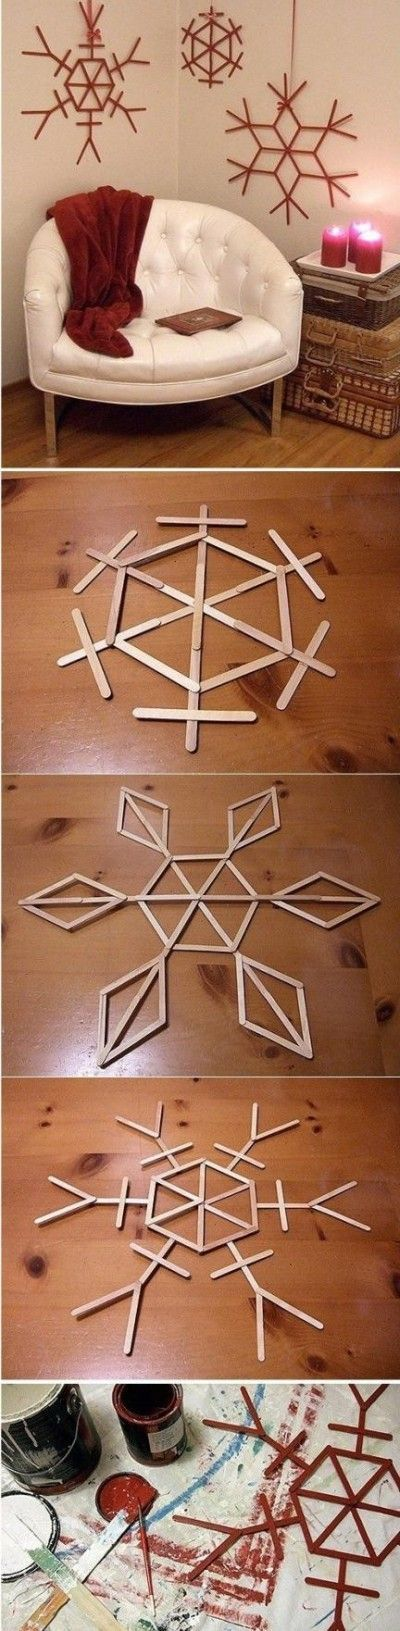 how to make beautiful snowflake wall decoration with used popsicle sticks